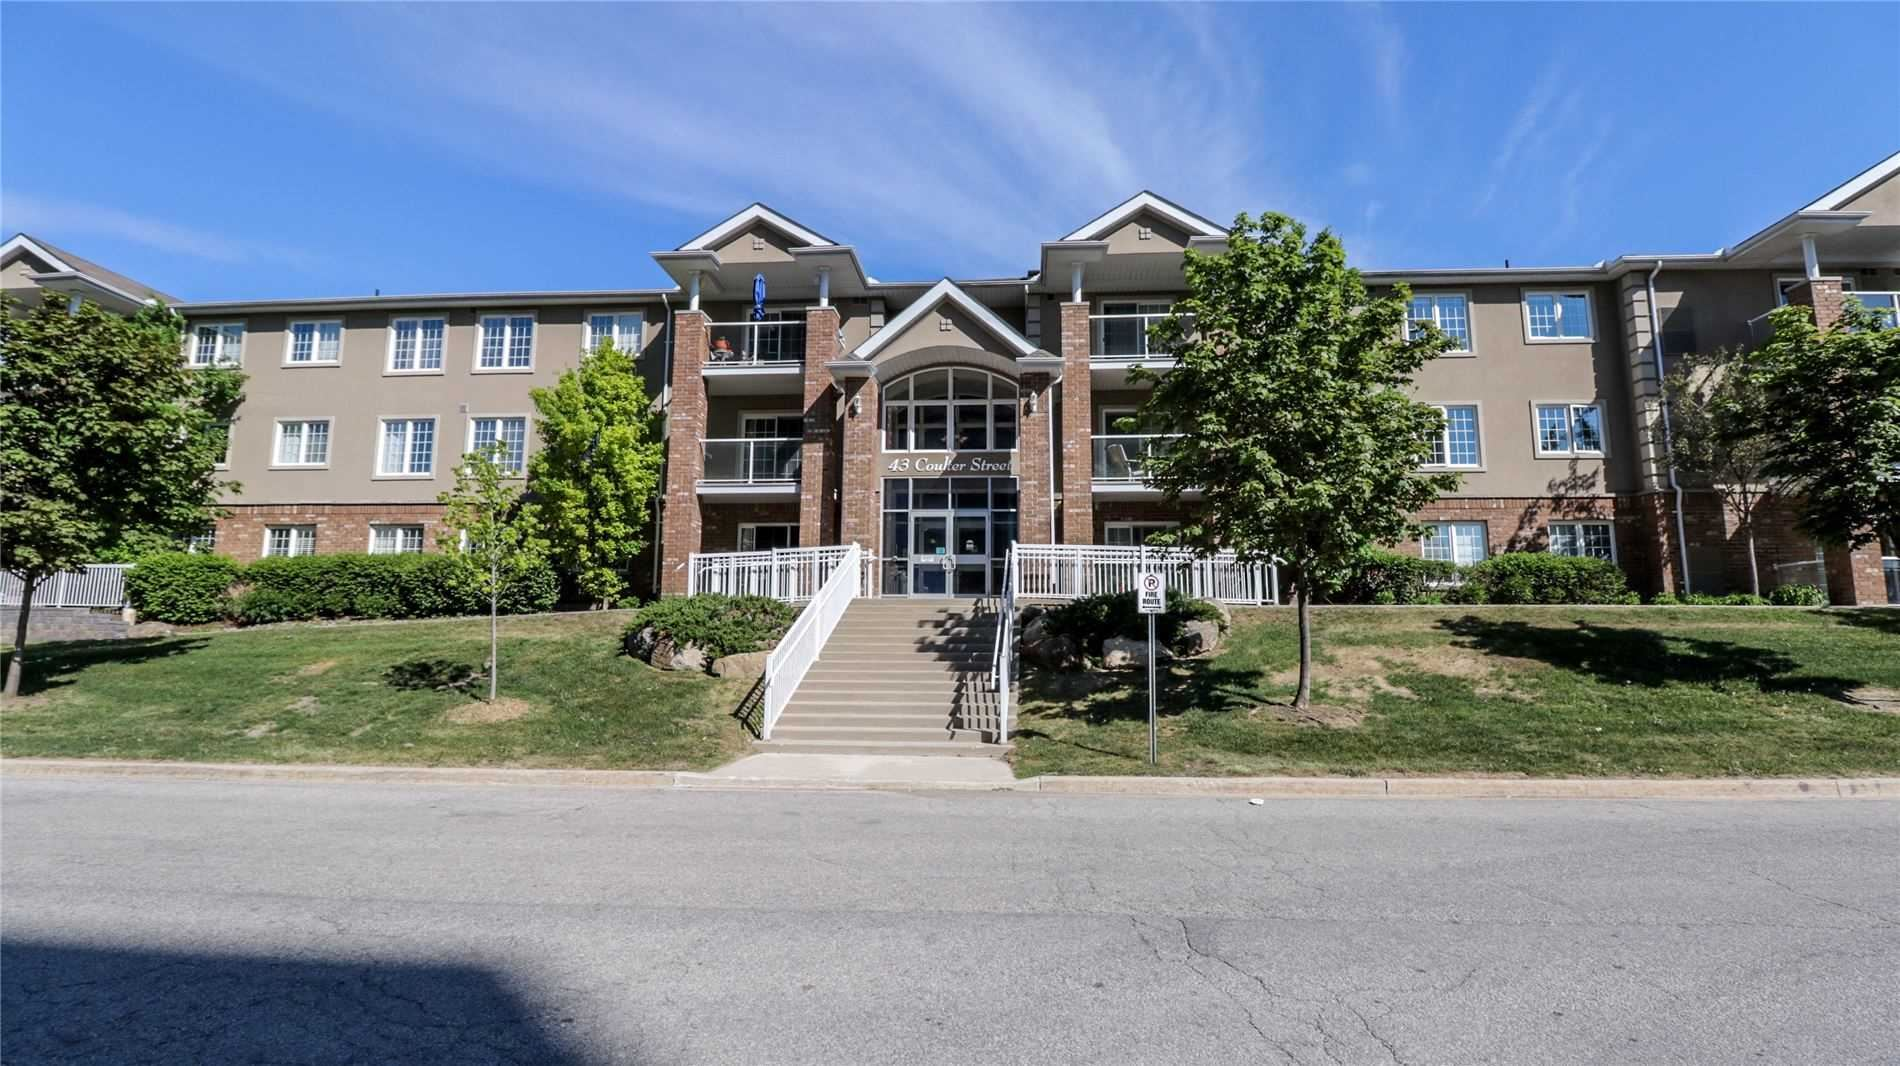 43 Coulter St #4, Barrie, ON L4N6L9 - MLS#: S5393907